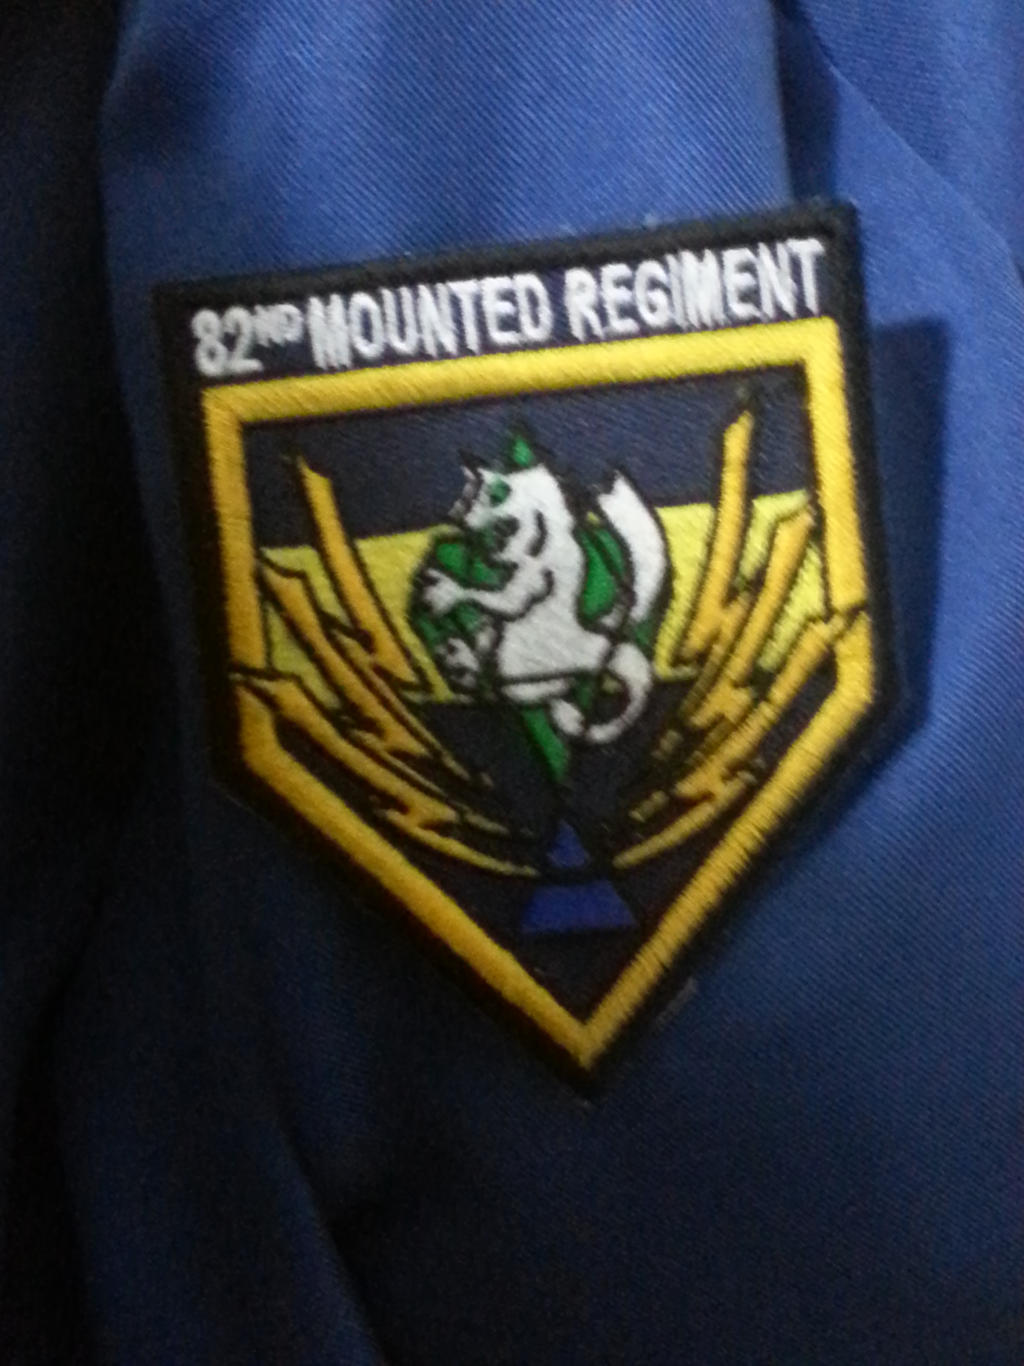 82nd Mounted Regiment Patch by docwinter